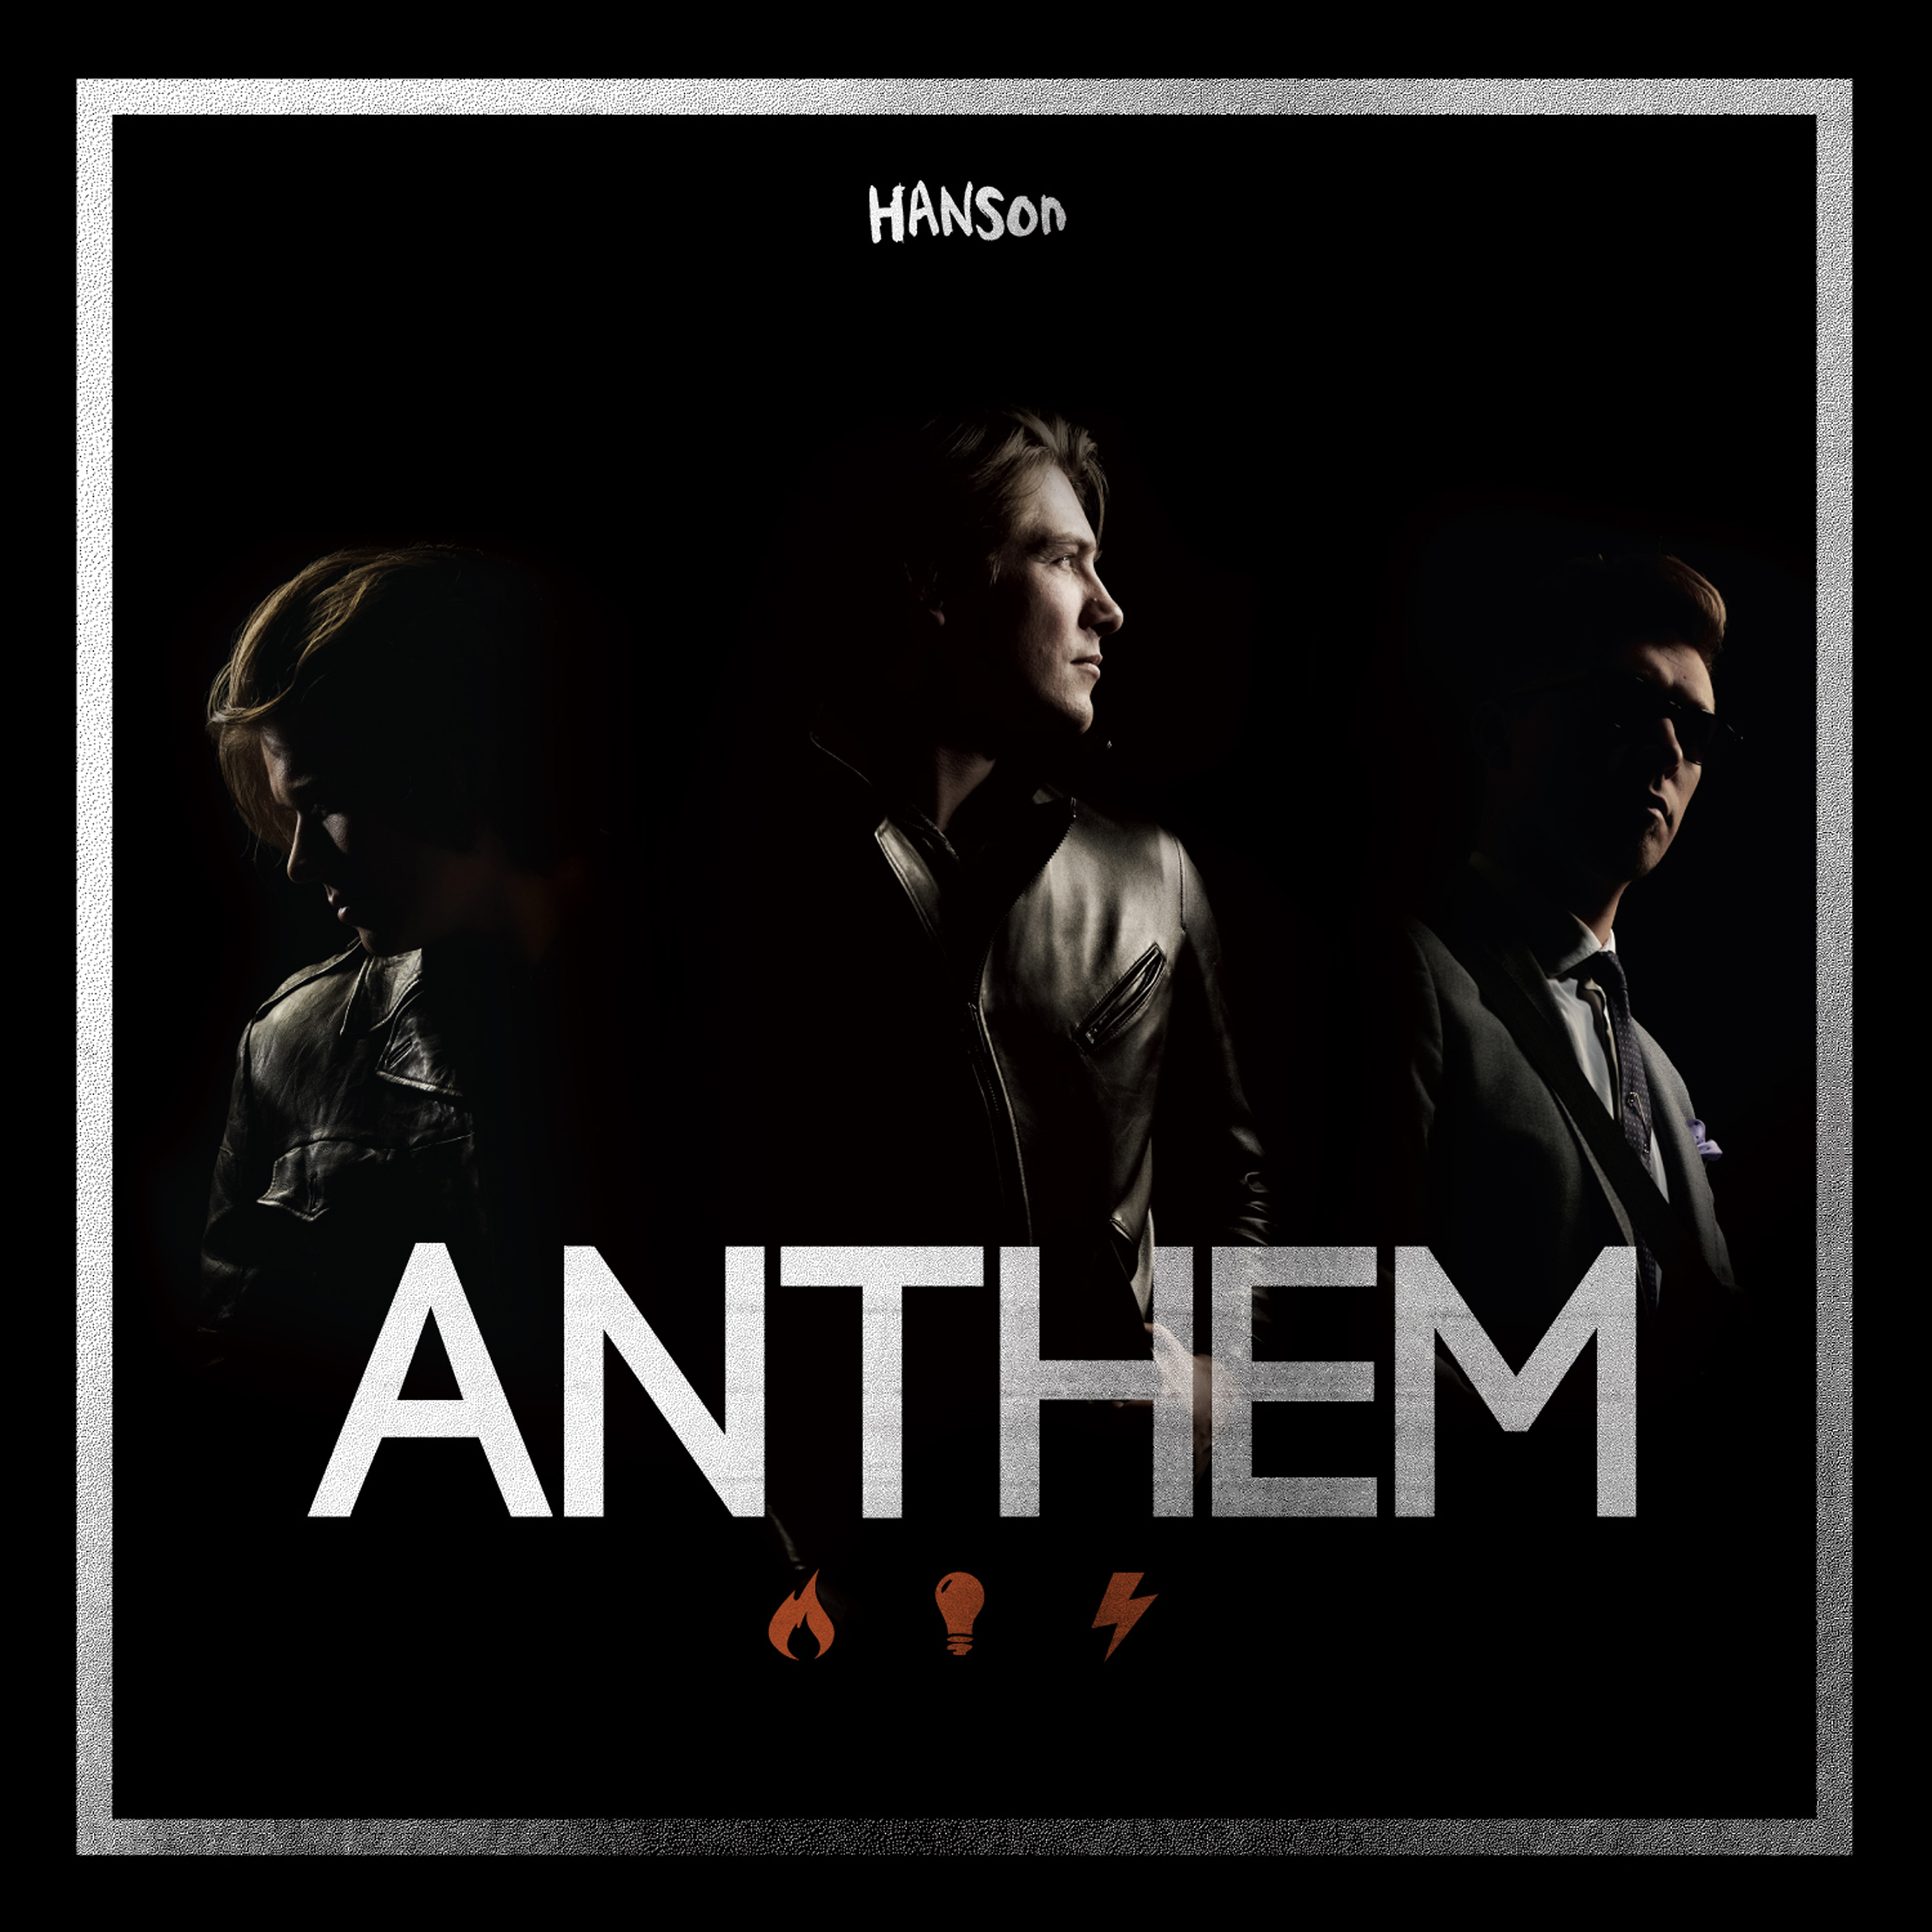 Buy Anthem by Hanson now